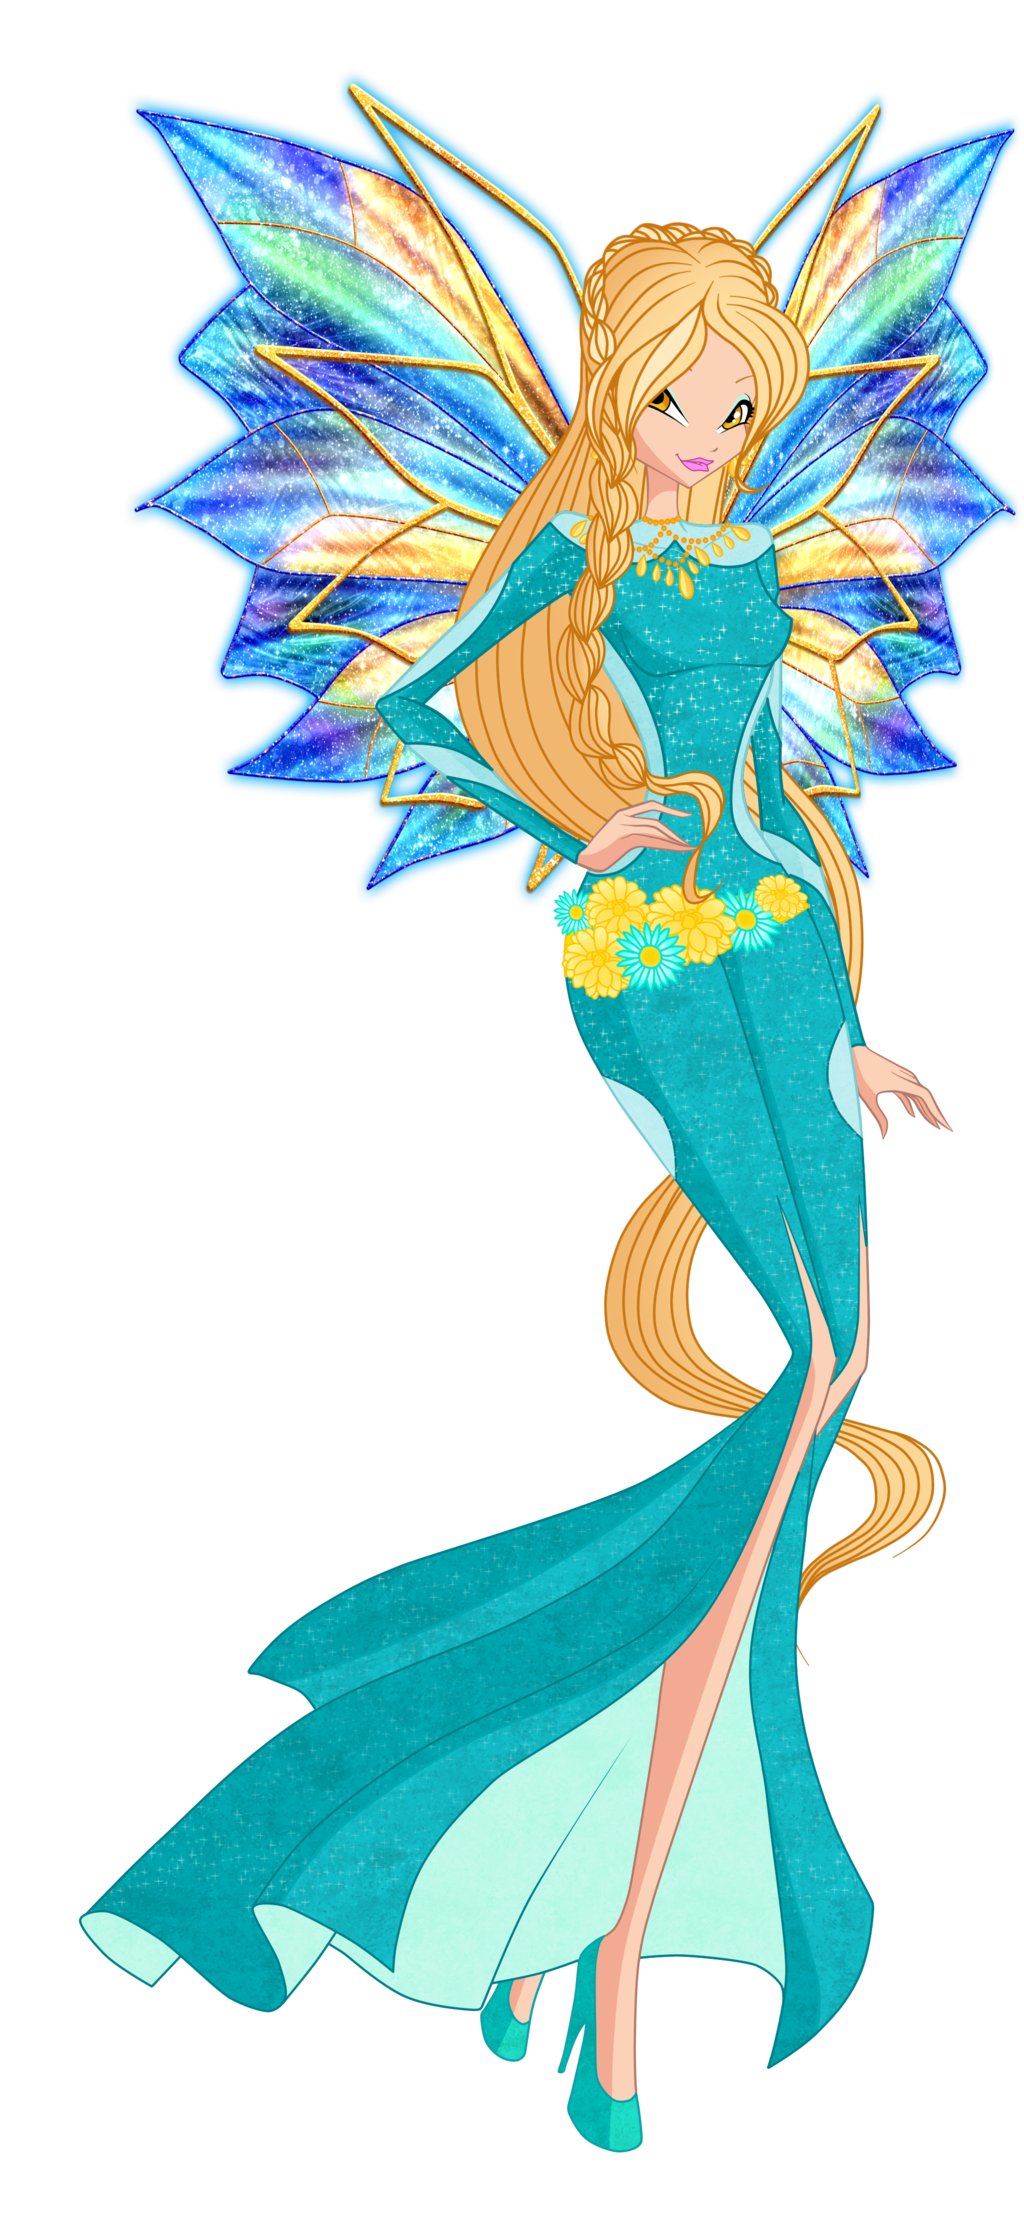 1024x2217 winx designs winx club, club style, club design